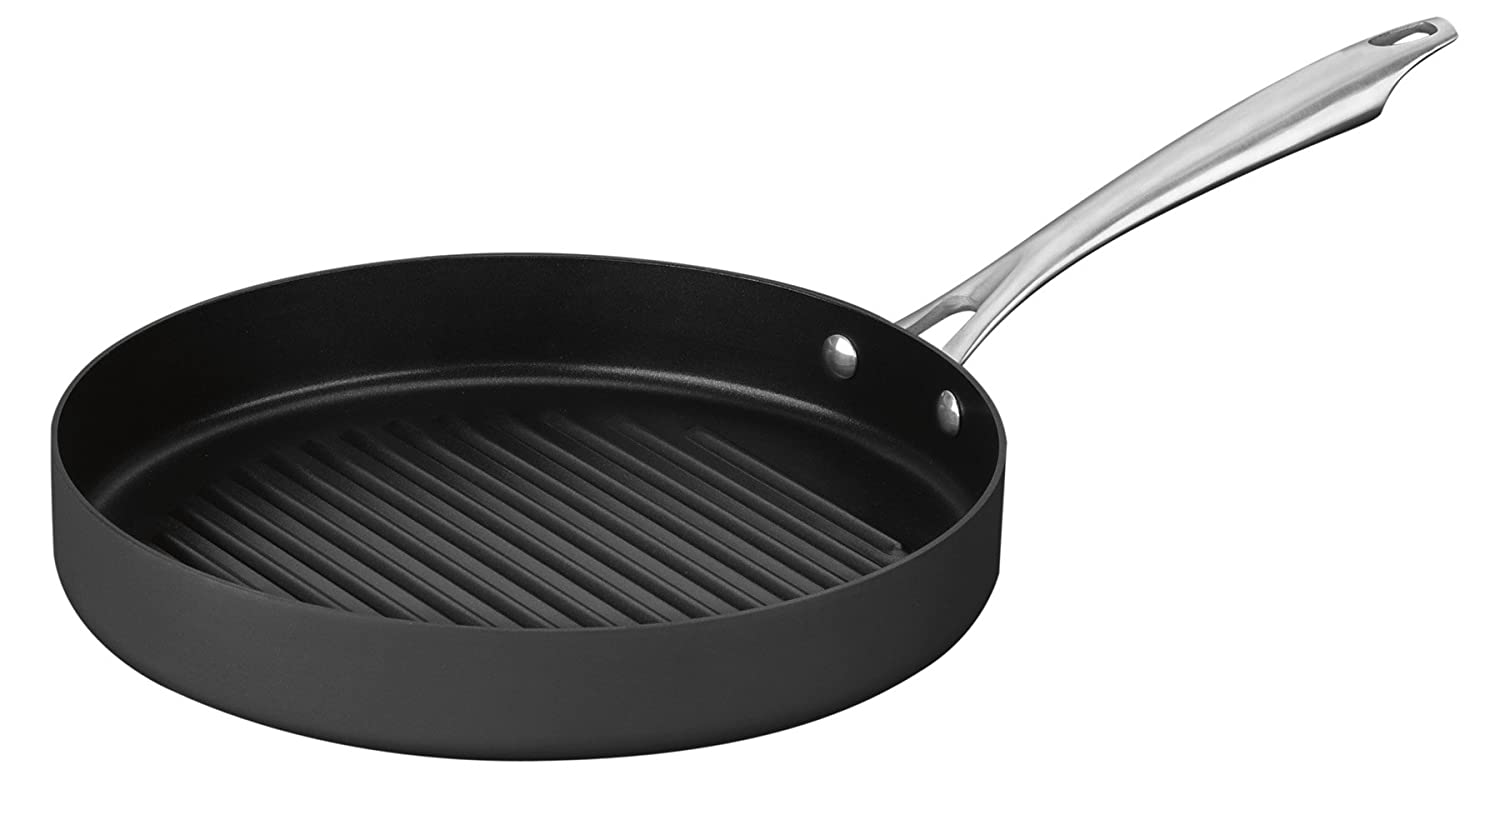 Cuisinart DSA30-28 Dishwasher Safe Hard-Anodized 11-Inch Round Grill Pan